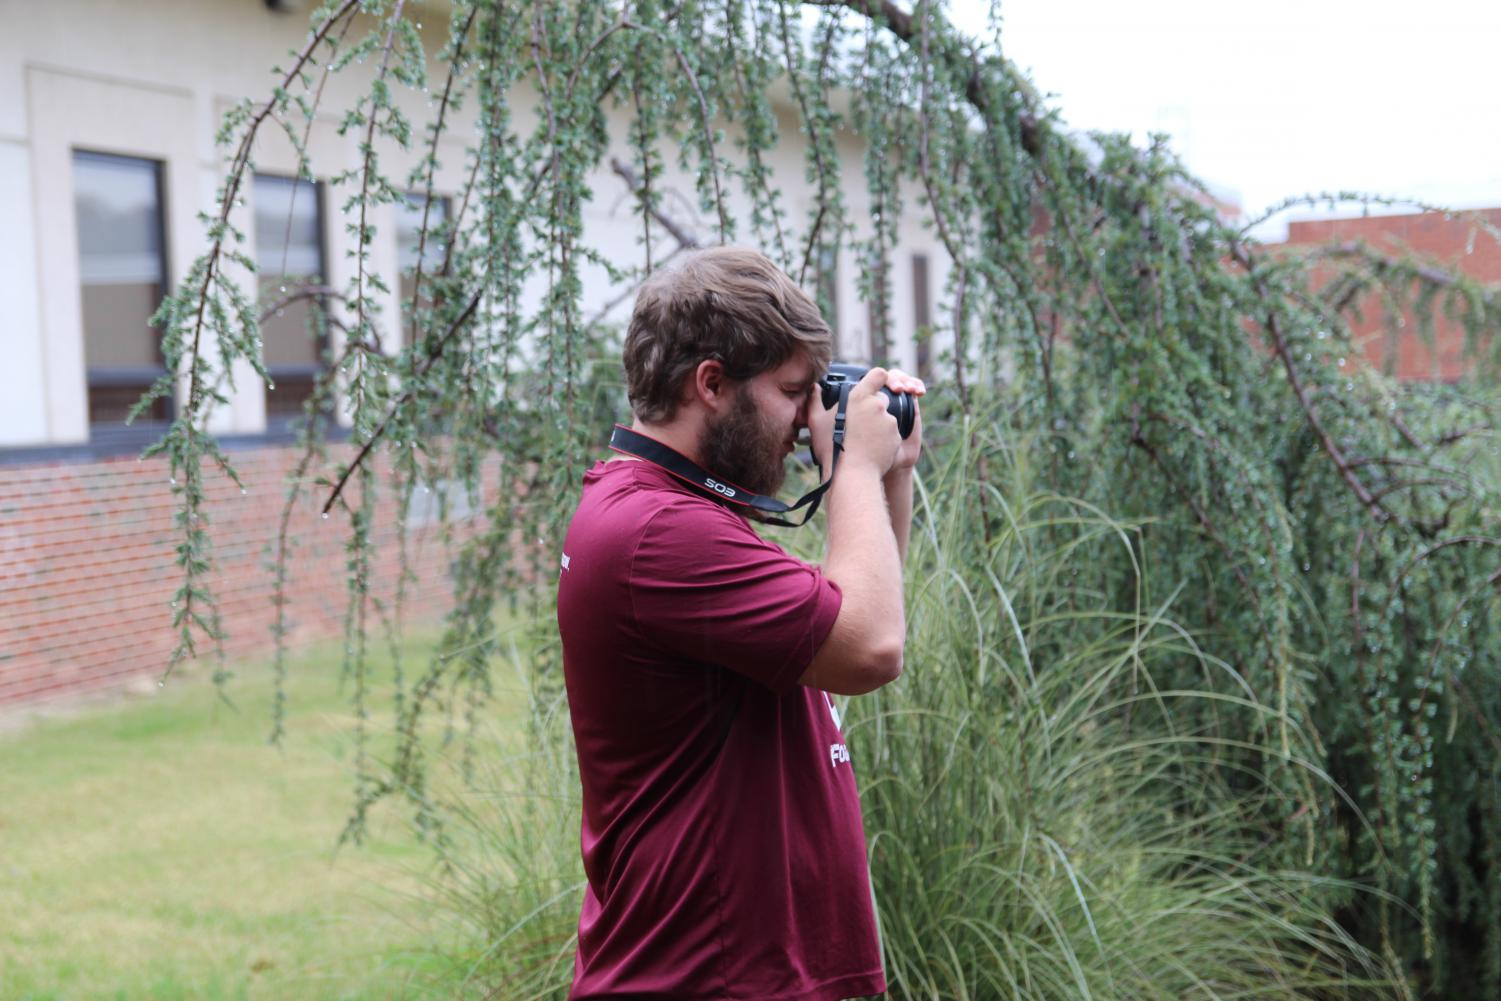 Koppenhaver is taking pictures of a rainy fall day.